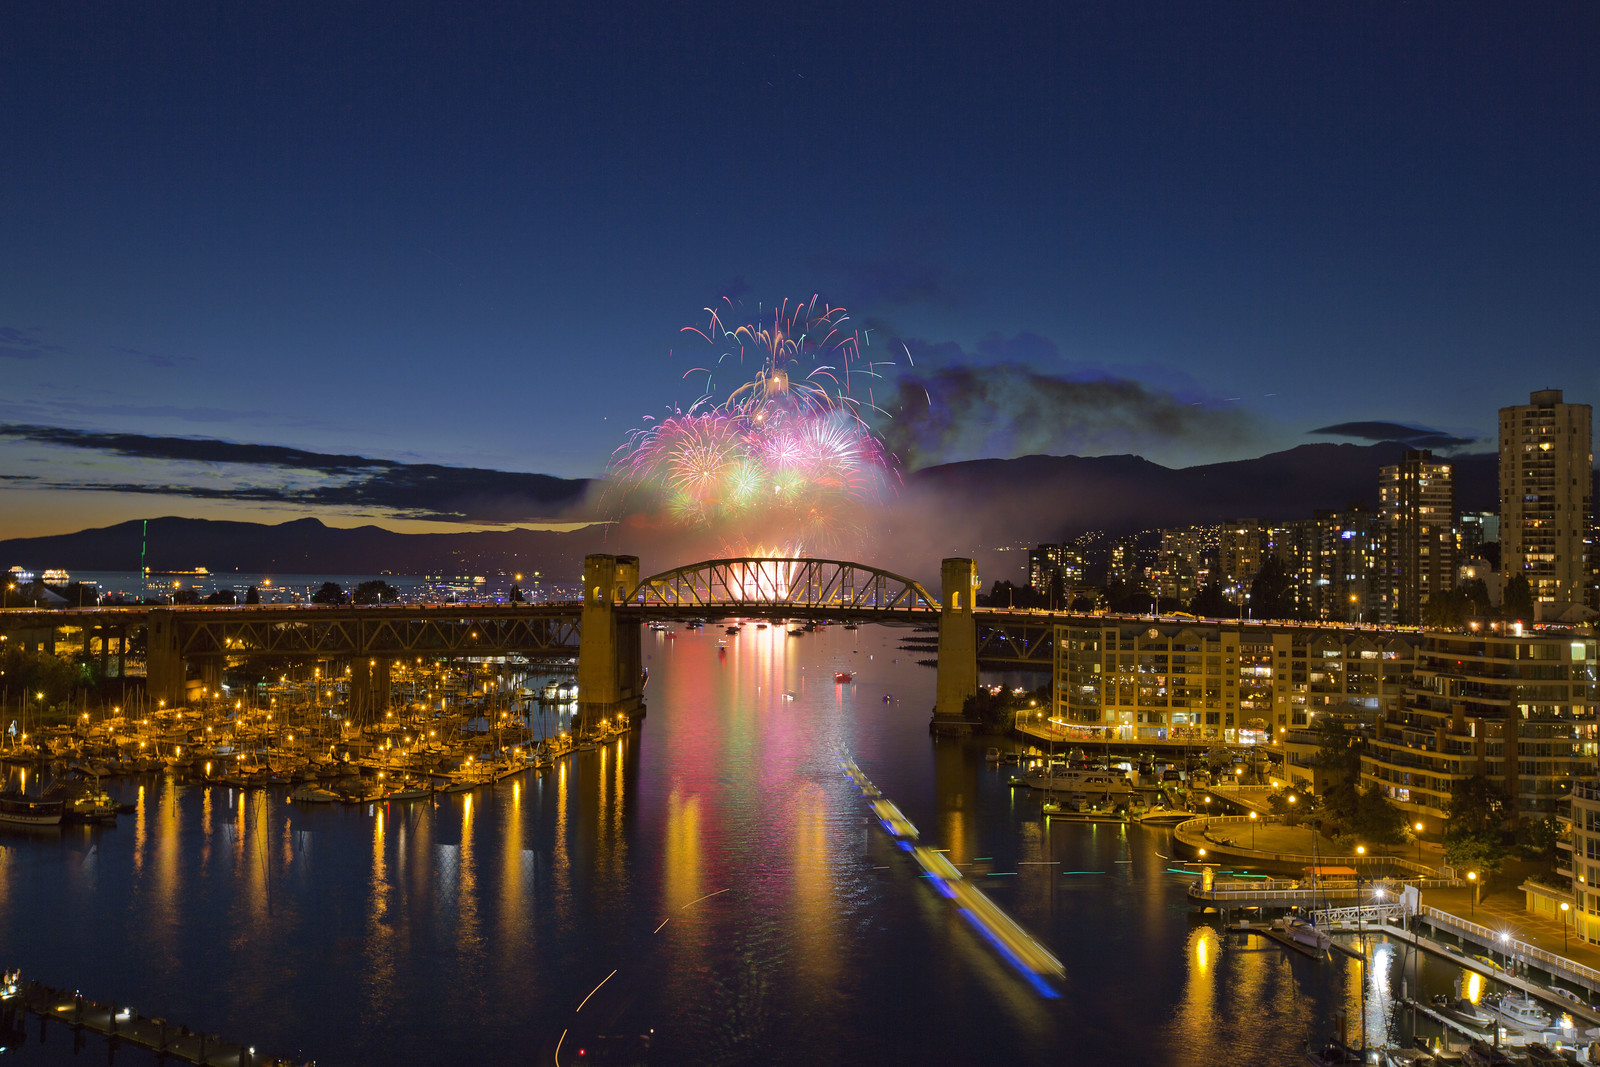 Celebration Of Light by Team Netherlands 2016